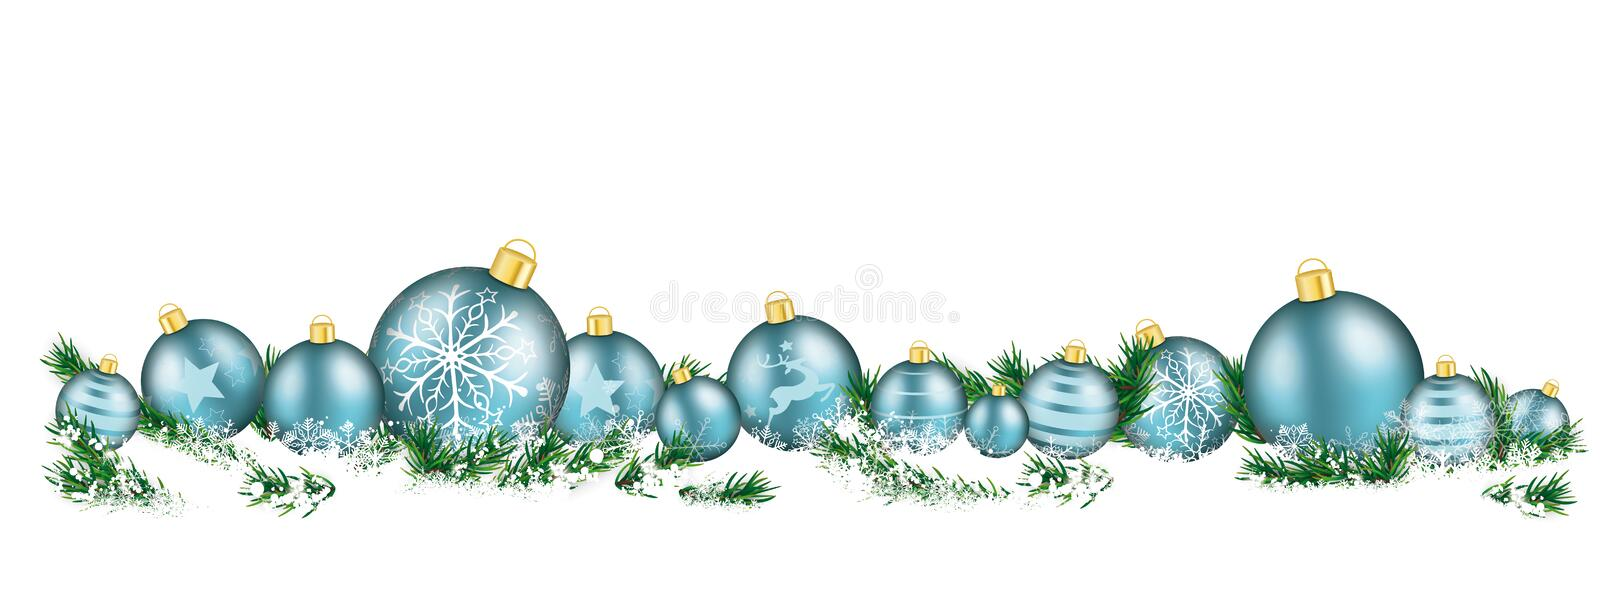 Christmas Cyan Baubles White Headline Snow Banner. Cyan christmas baubles with twigs in the snow stock illustration